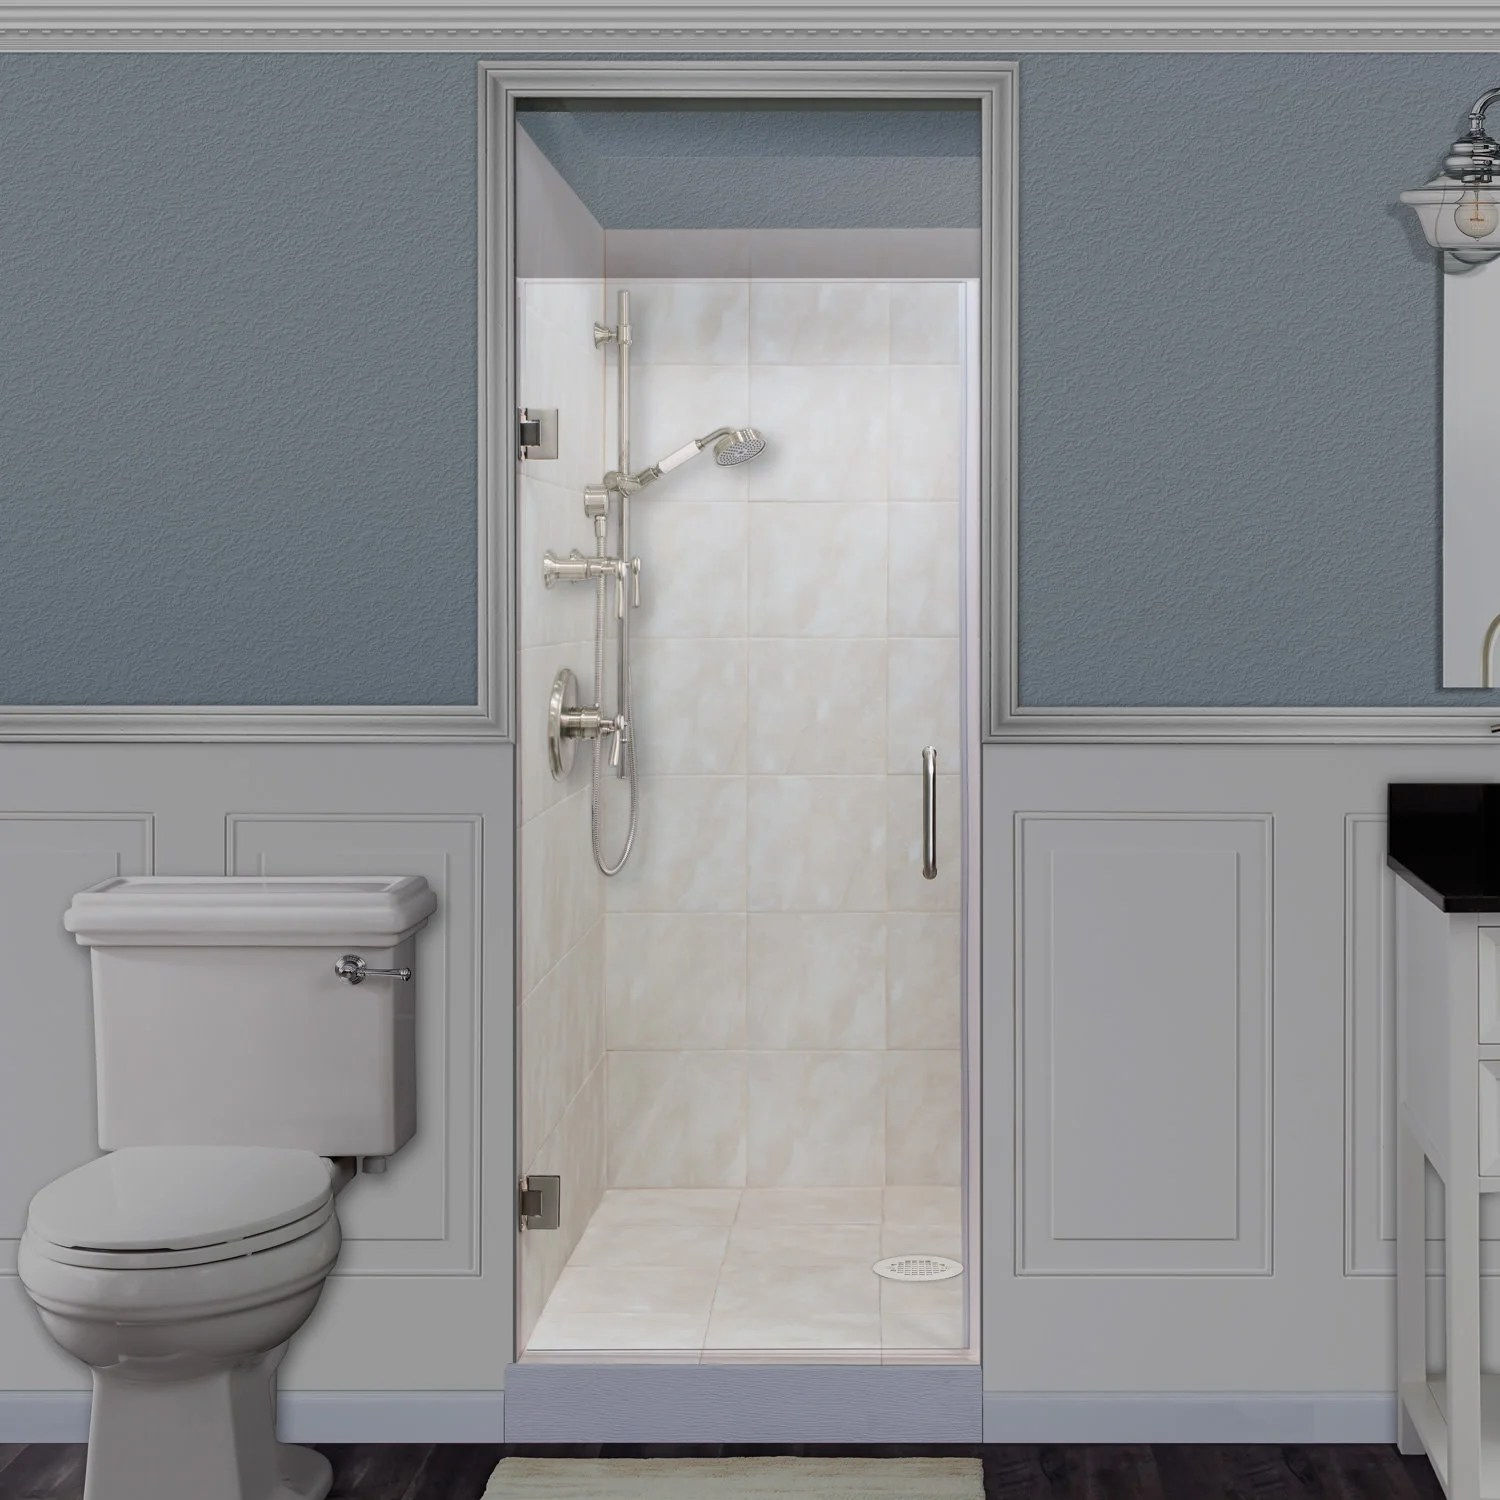 Miseno Msdcfl3072 72 High X 30 Wide Frameless Hinged Pivoting Shower Door With Clear 3 8 Glass And H2off Technology